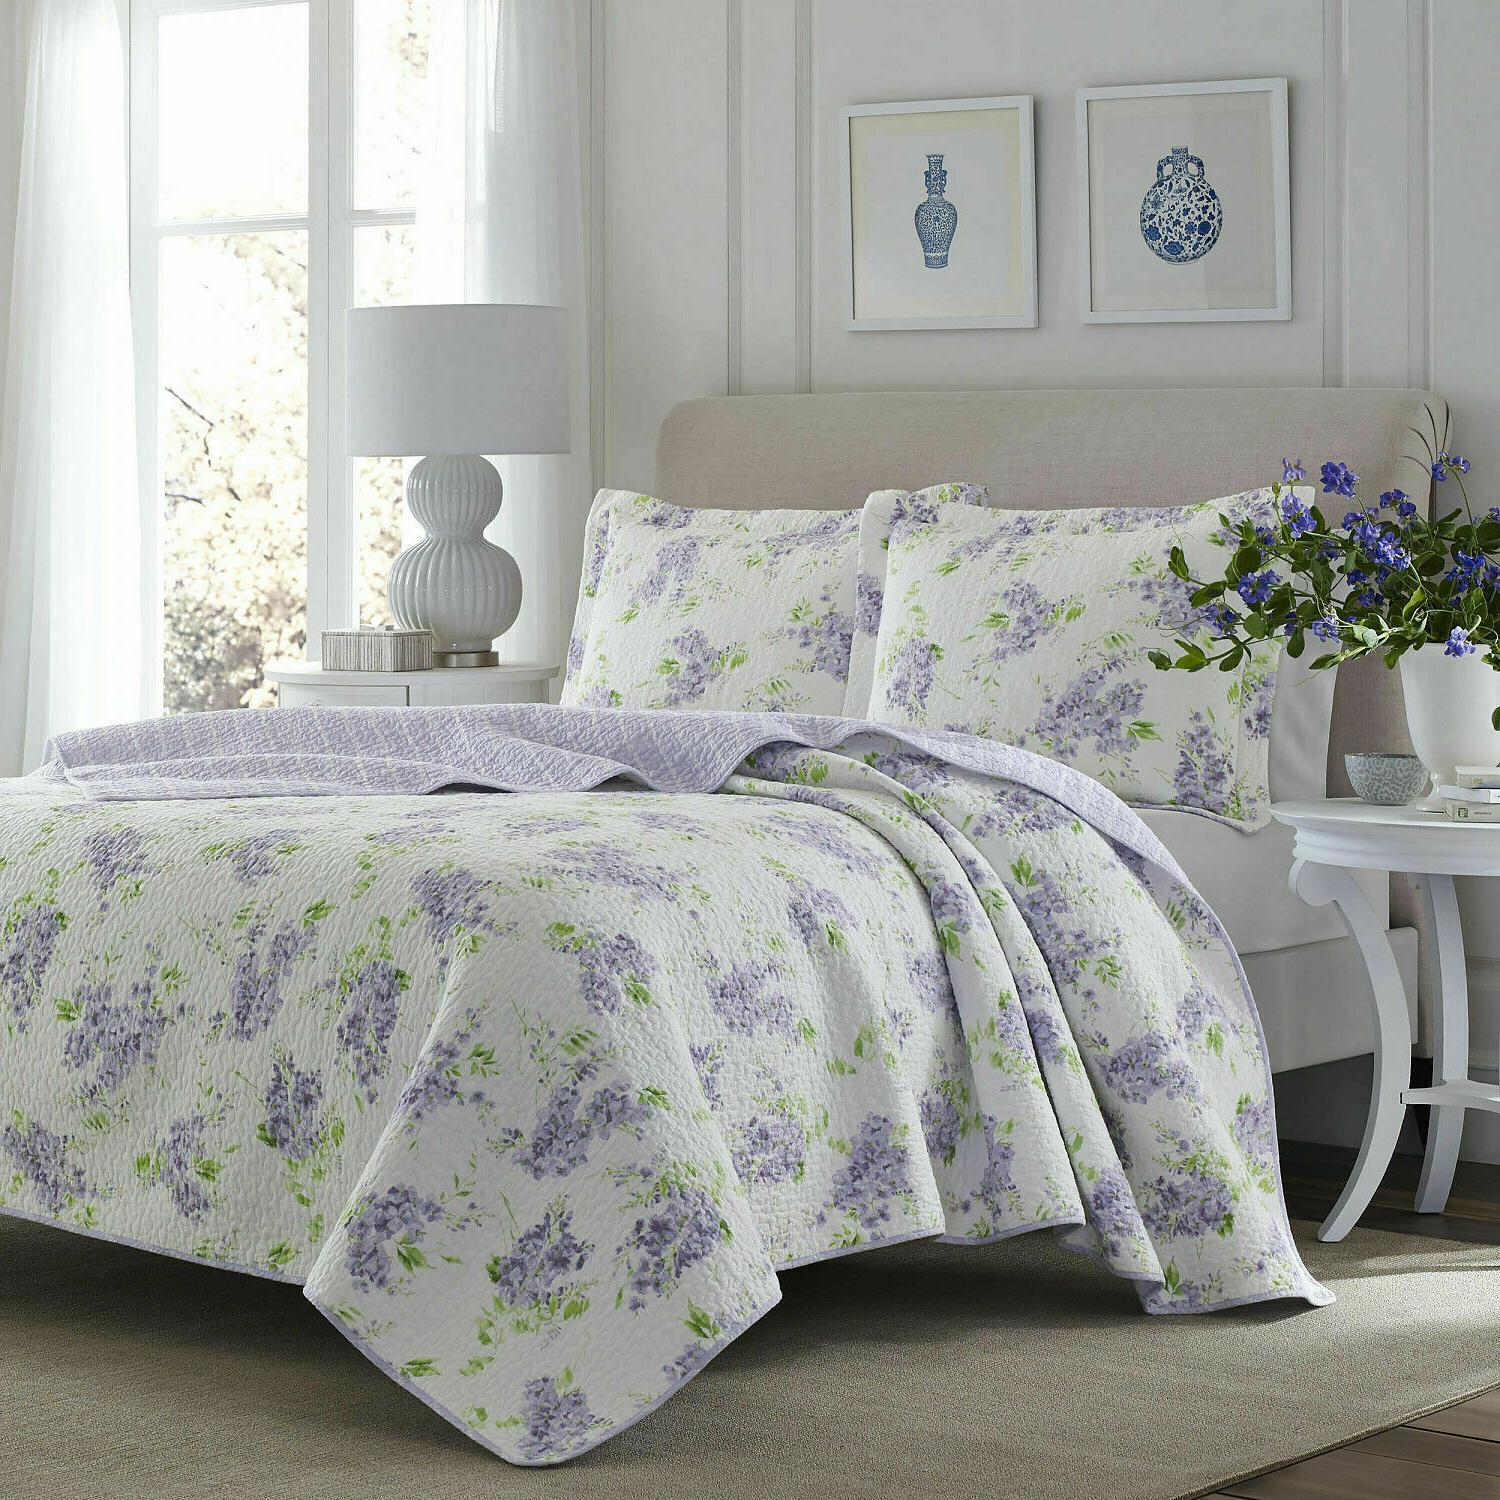 Laura / Lilac Floral Cotton TWIN Quilt Set